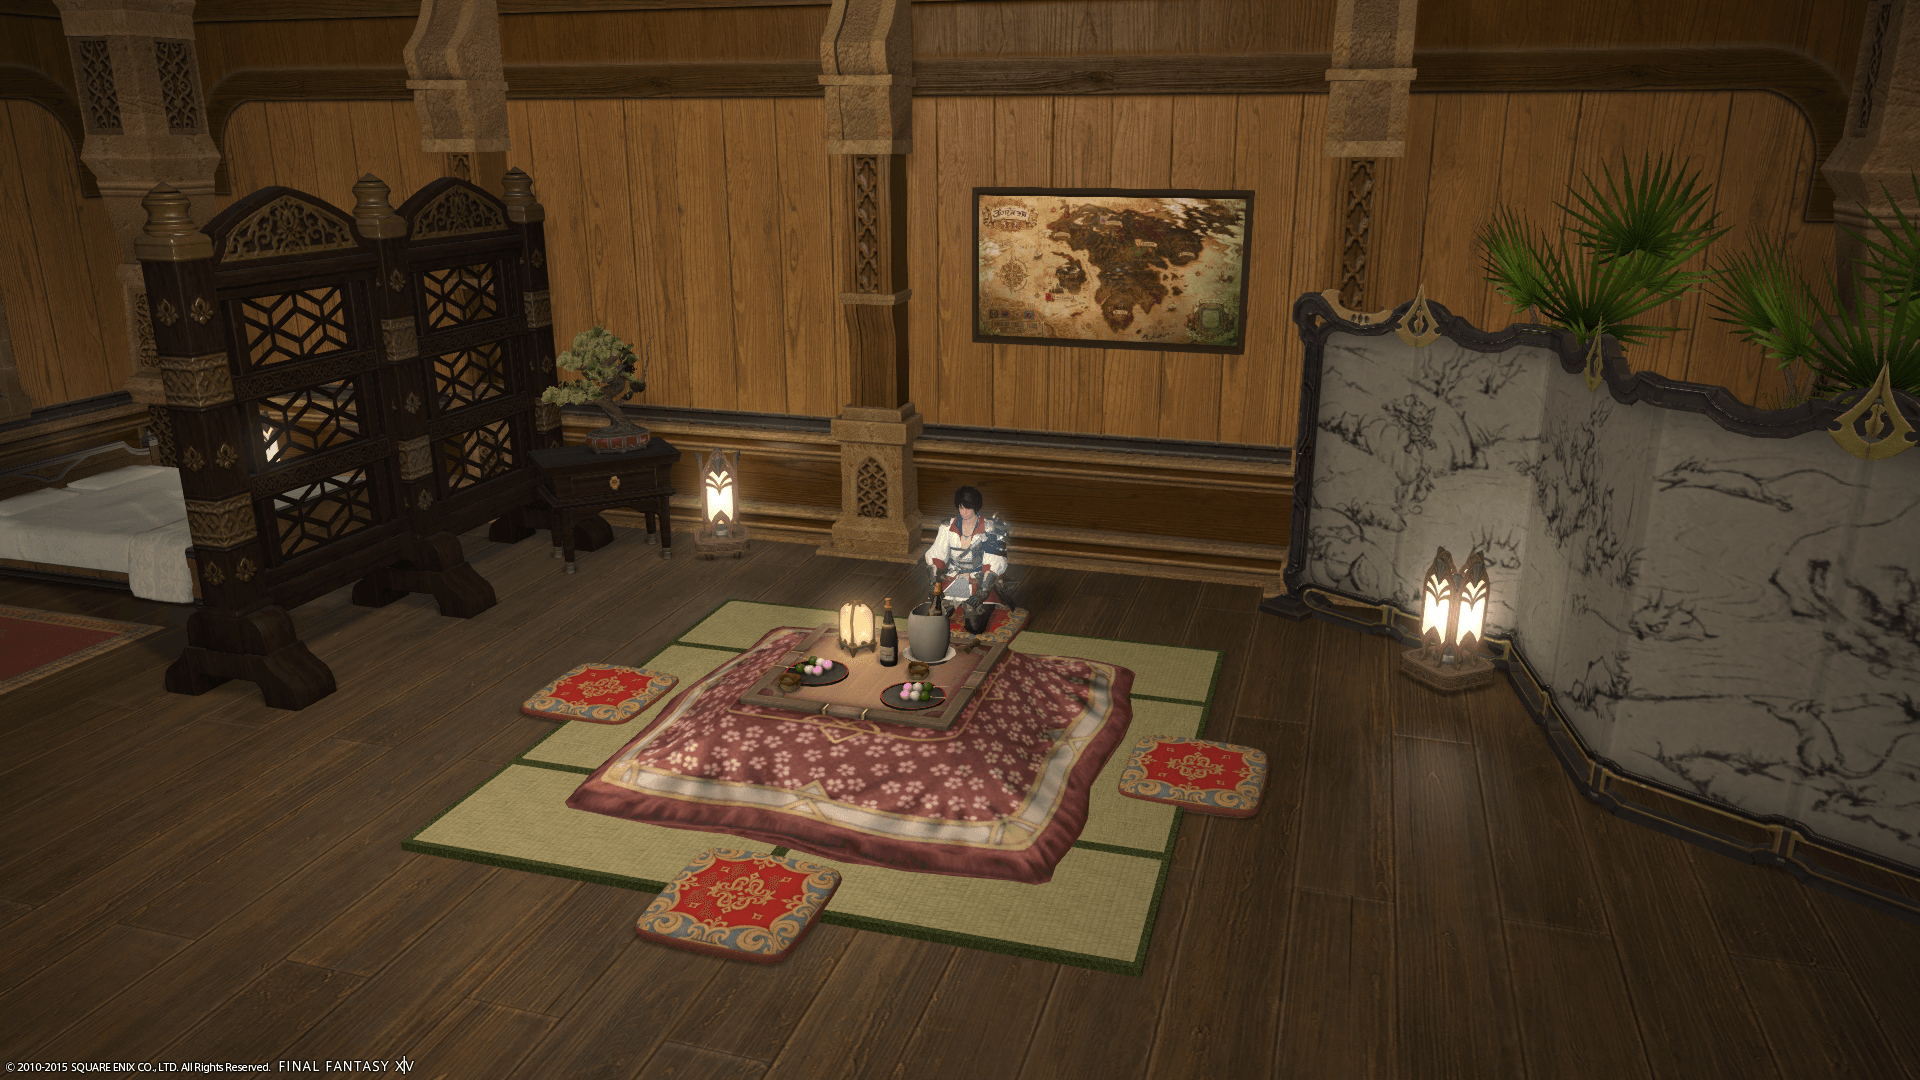 final fantasy xiv alle neuen h user schon weg spieler drohen mit boykott mein. Black Bedroom Furniture Sets. Home Design Ideas